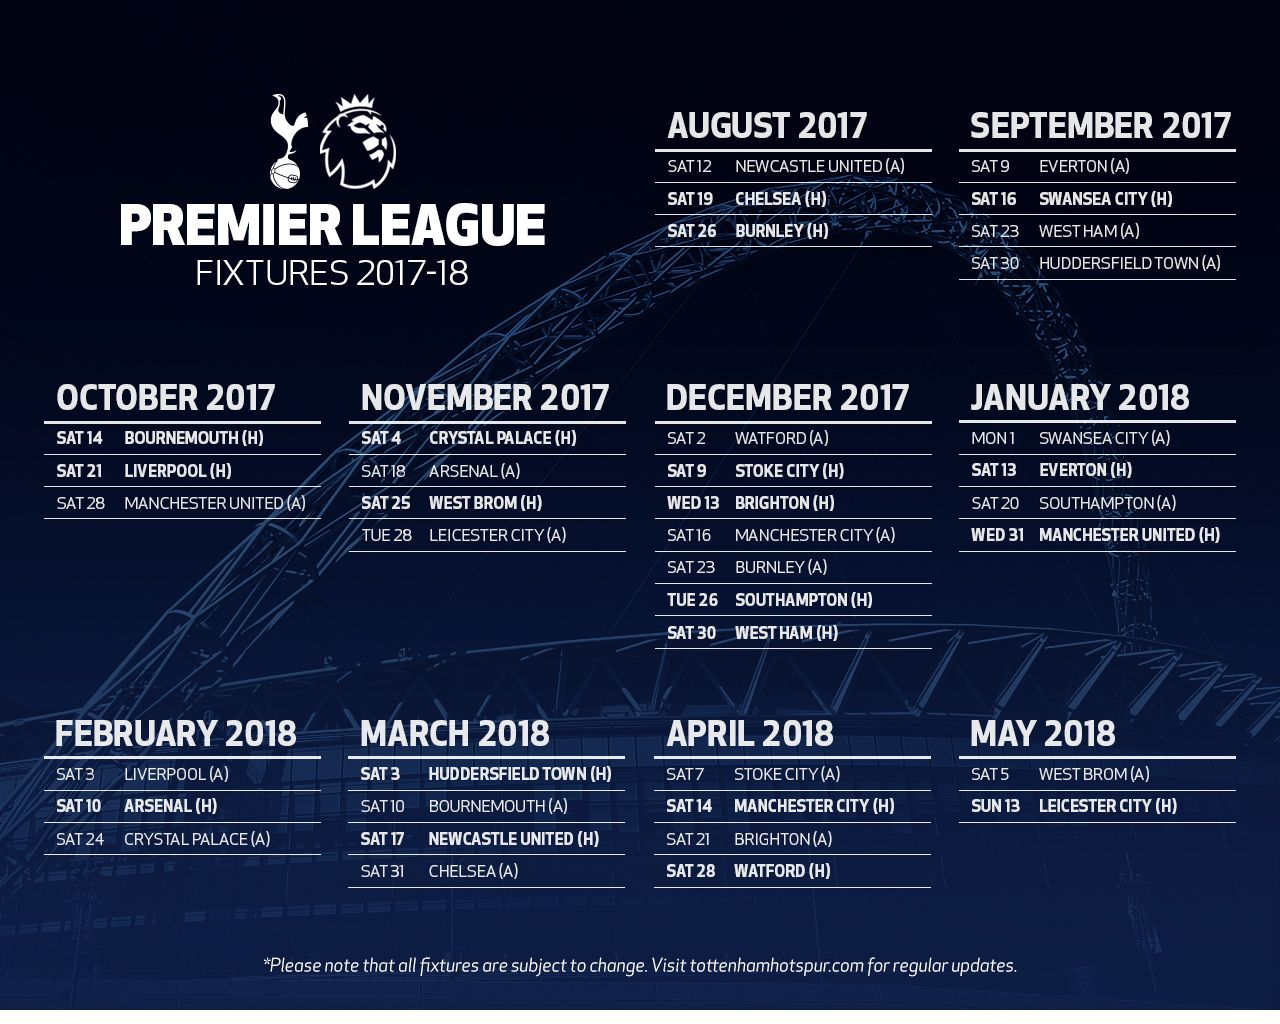 swansea city fixtures